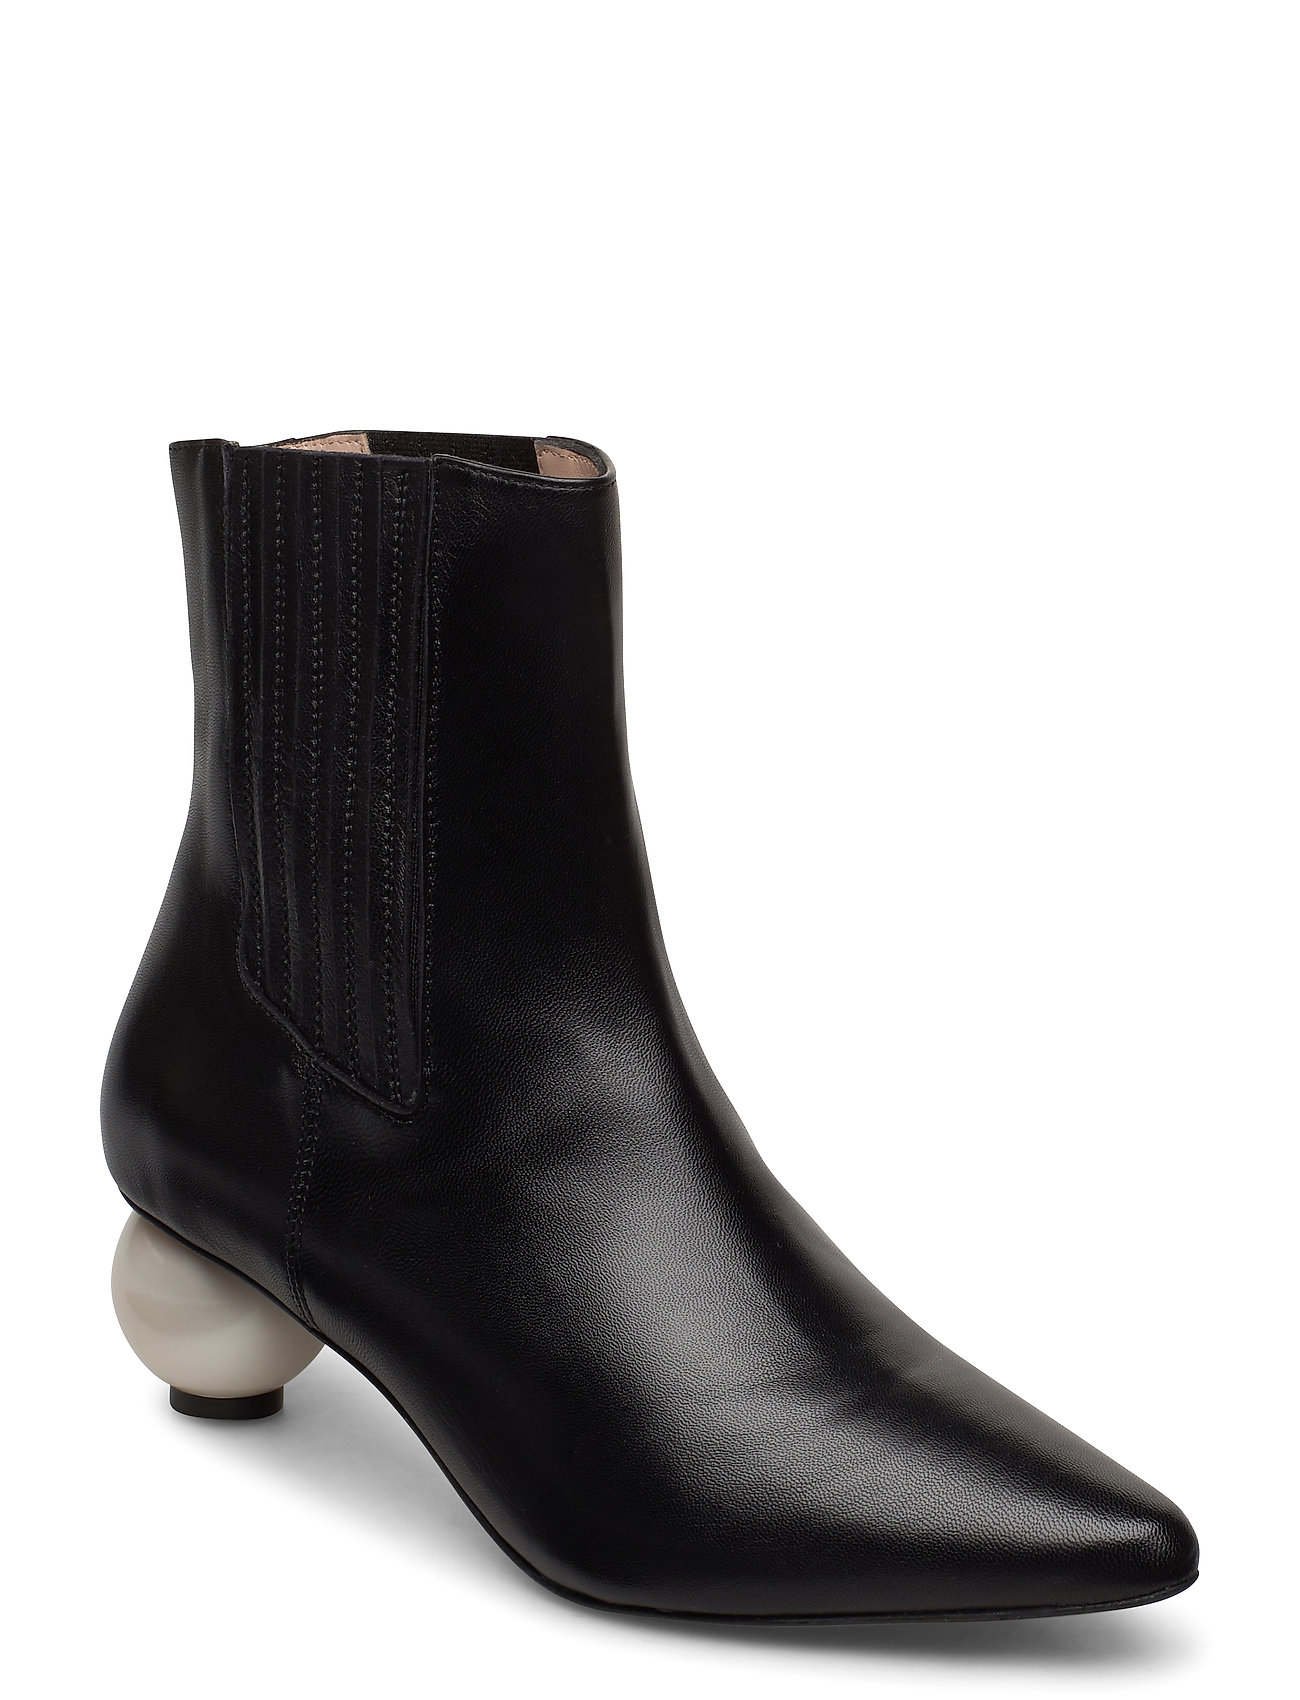 Image of Roxanne Black Boot With Pearl Heel Shoes Boots Ankle Boots Ankle Boot - Heel Sort Mother Of Pearl (3432006943)